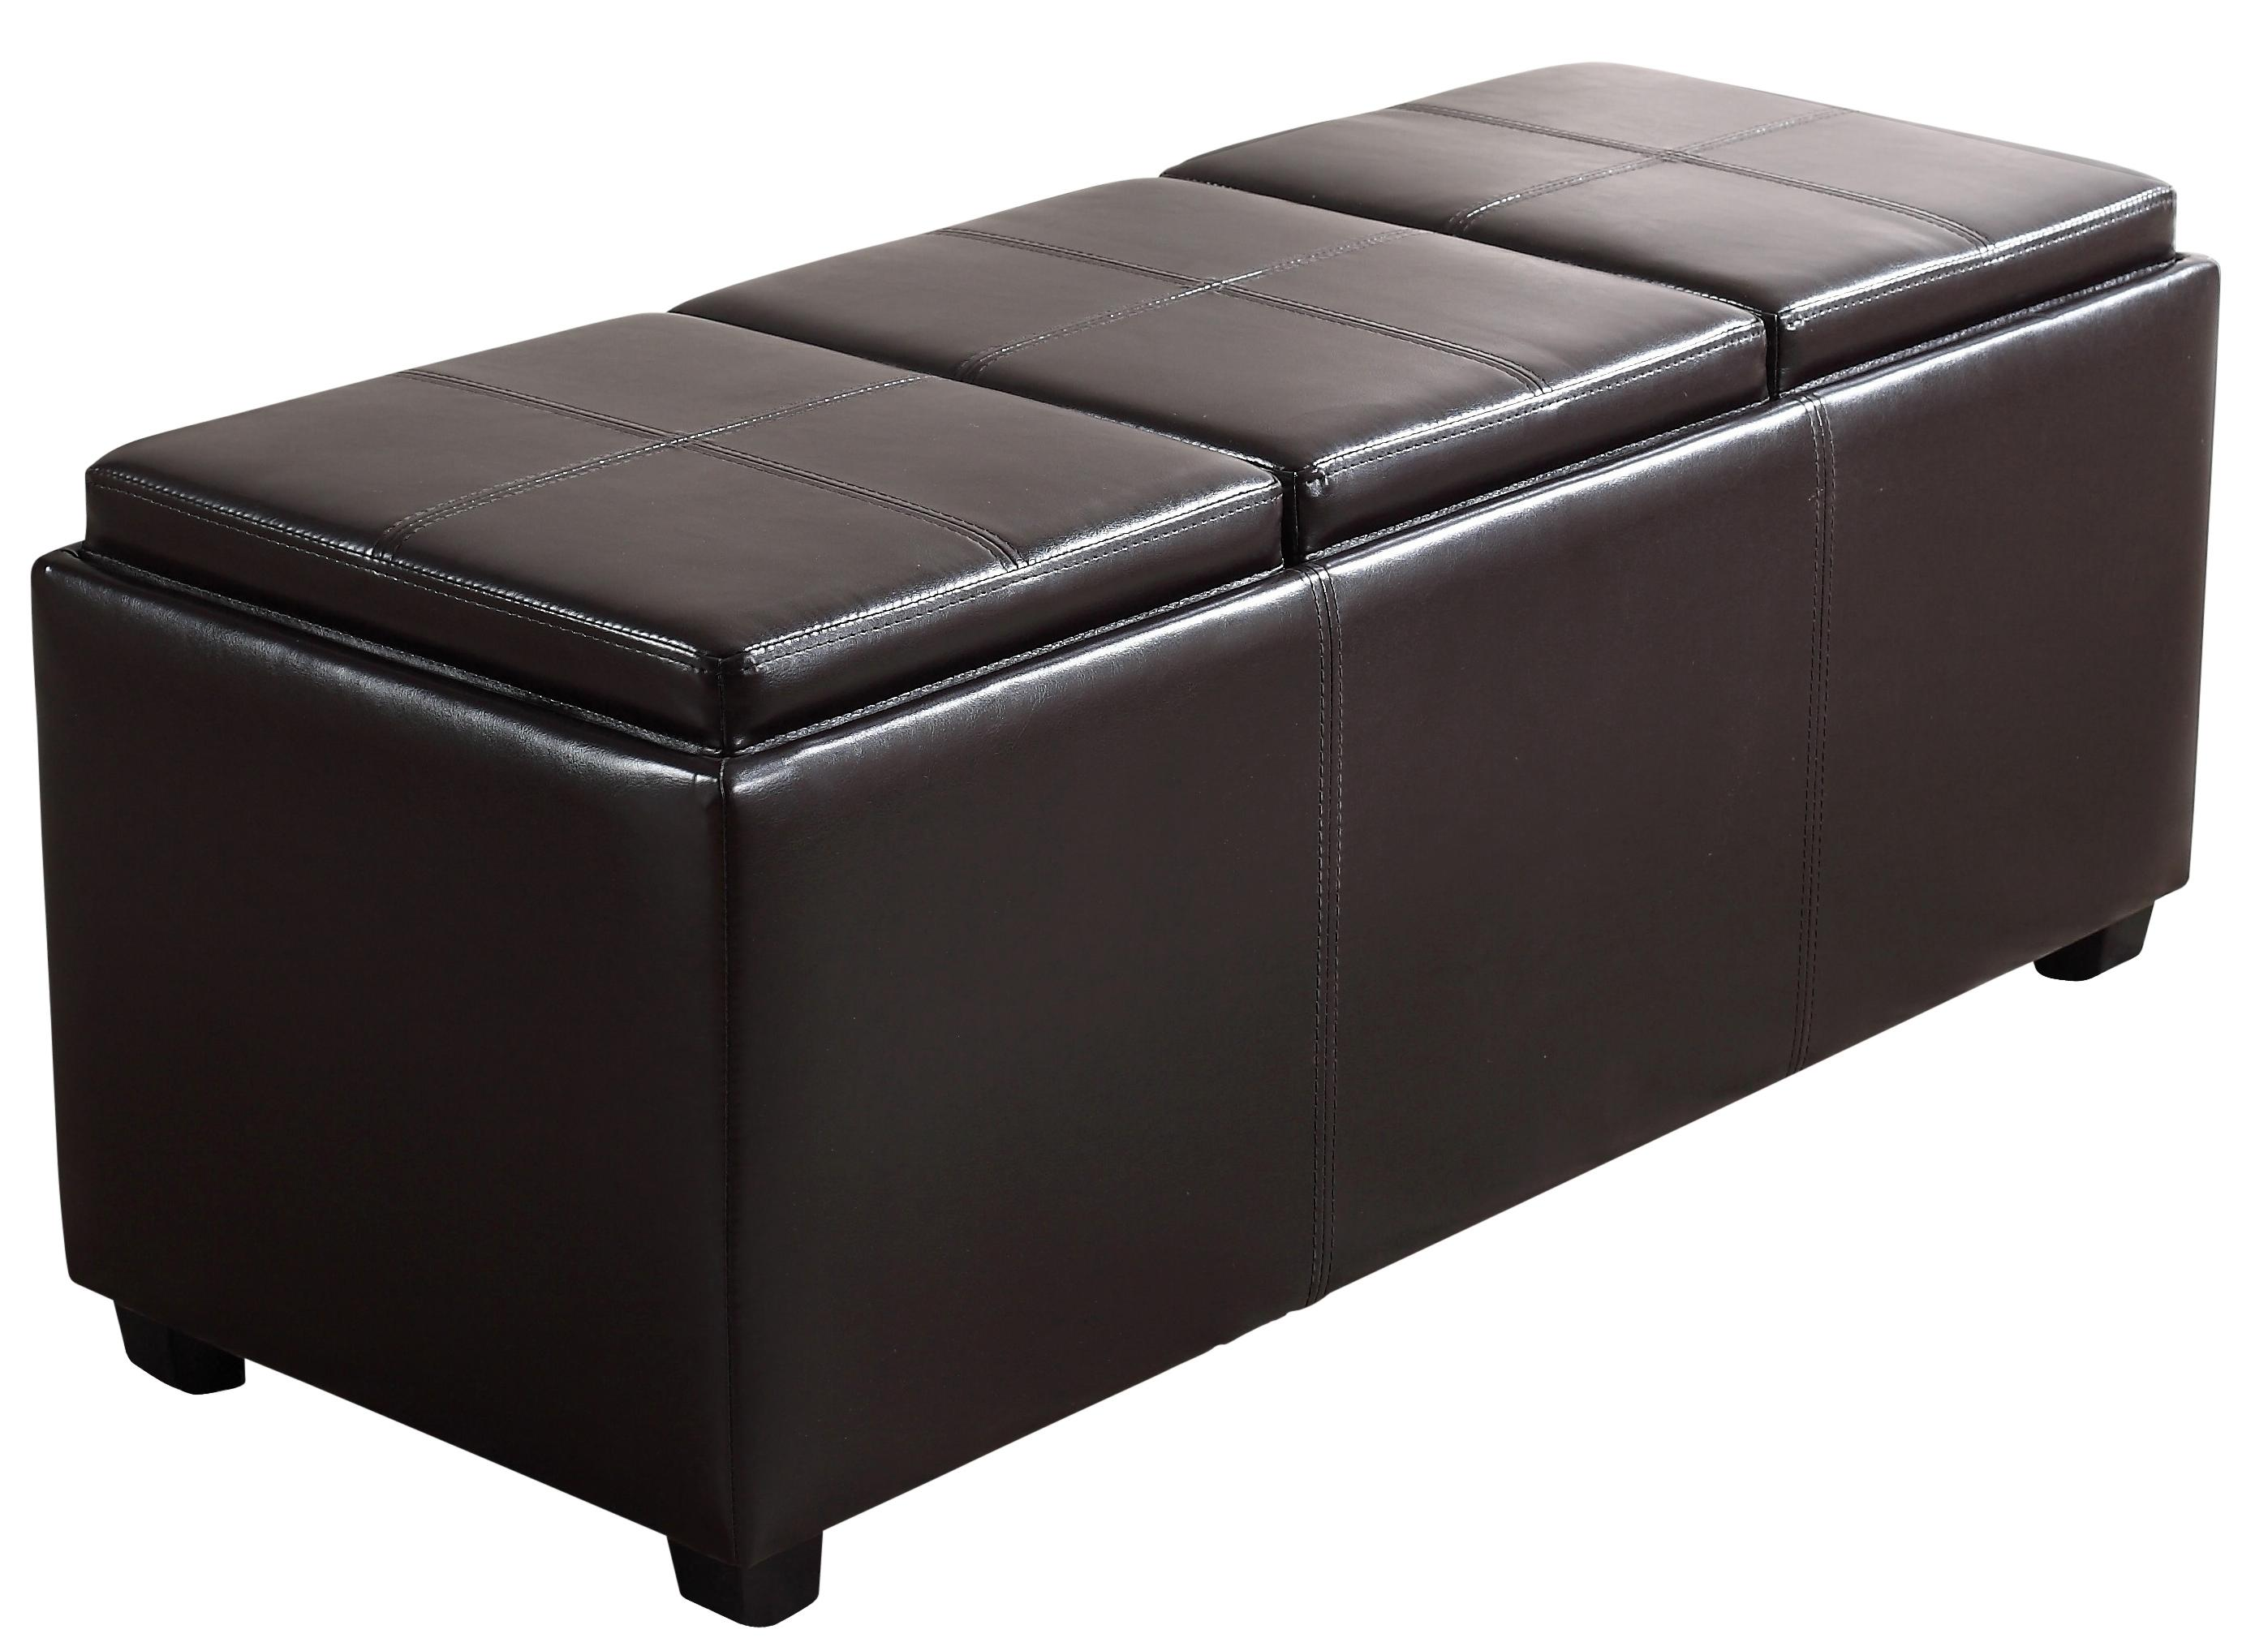 simpli home avalon faux leather rectangular storage ottoman with 3 serving trays. Black Bedroom Furniture Sets. Home Design Ideas